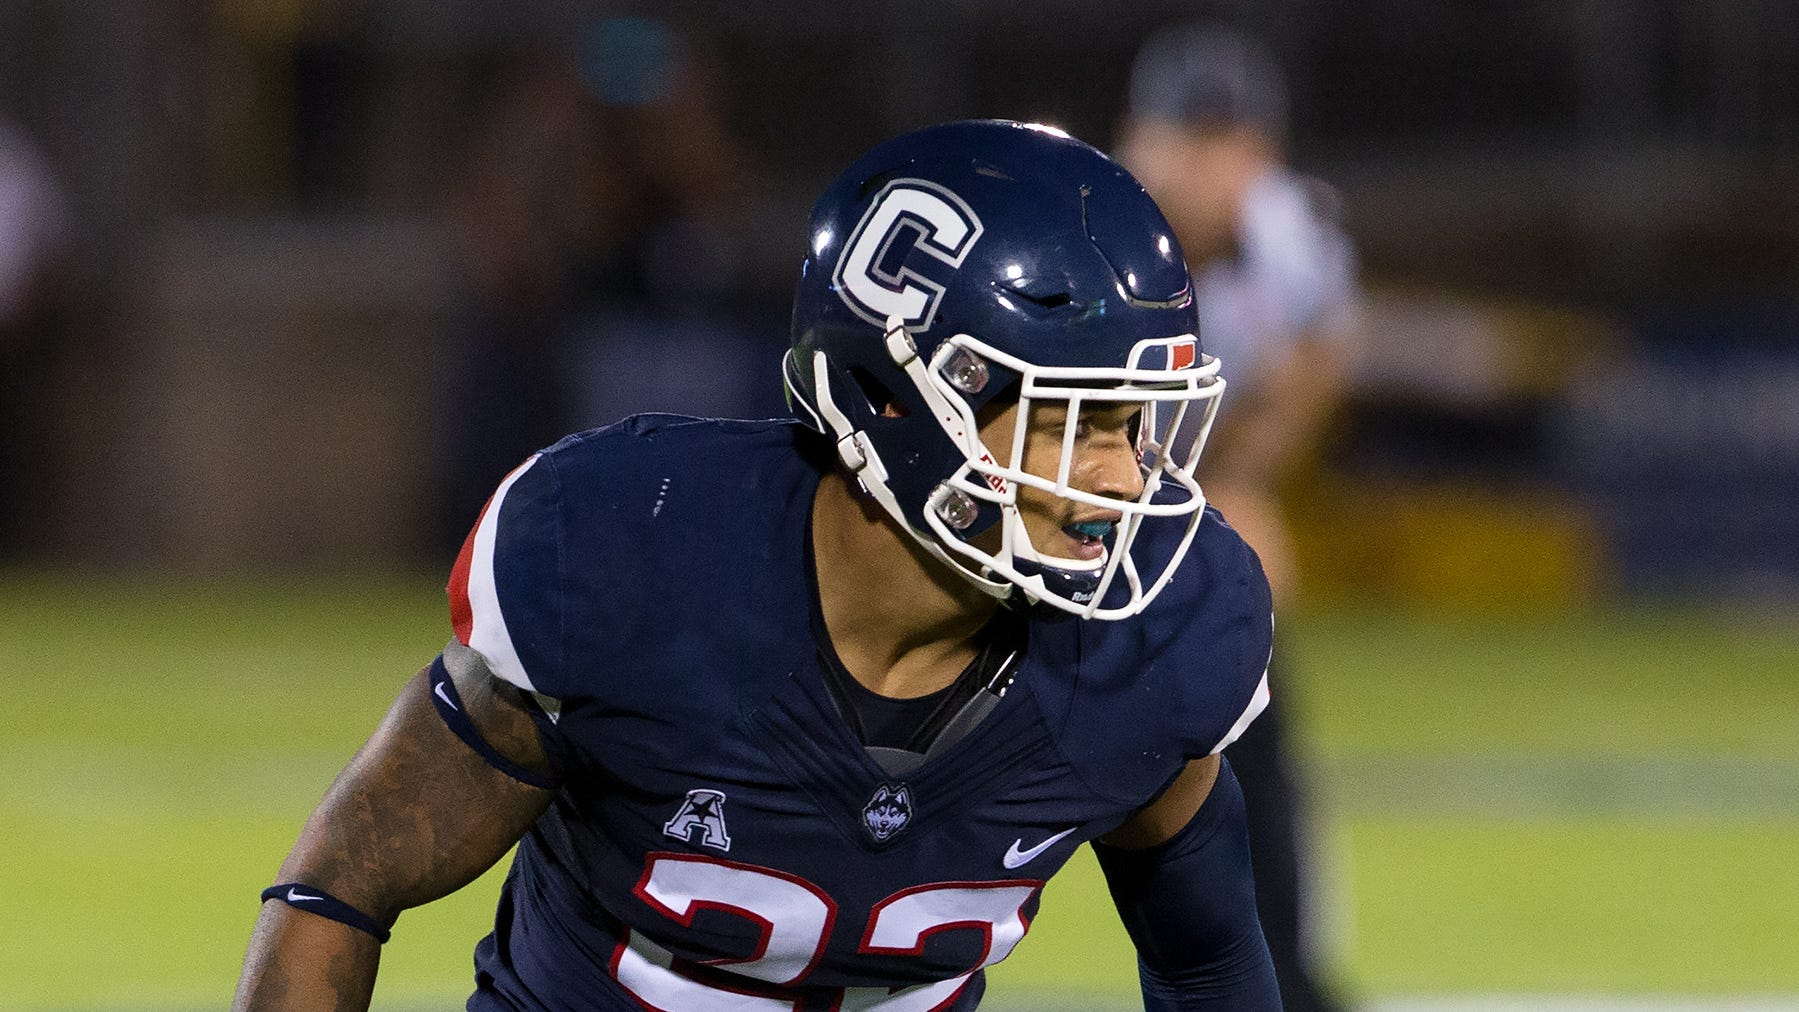 Eli Thomas is in his first season at UConn after playing at Lackawanna Community College.